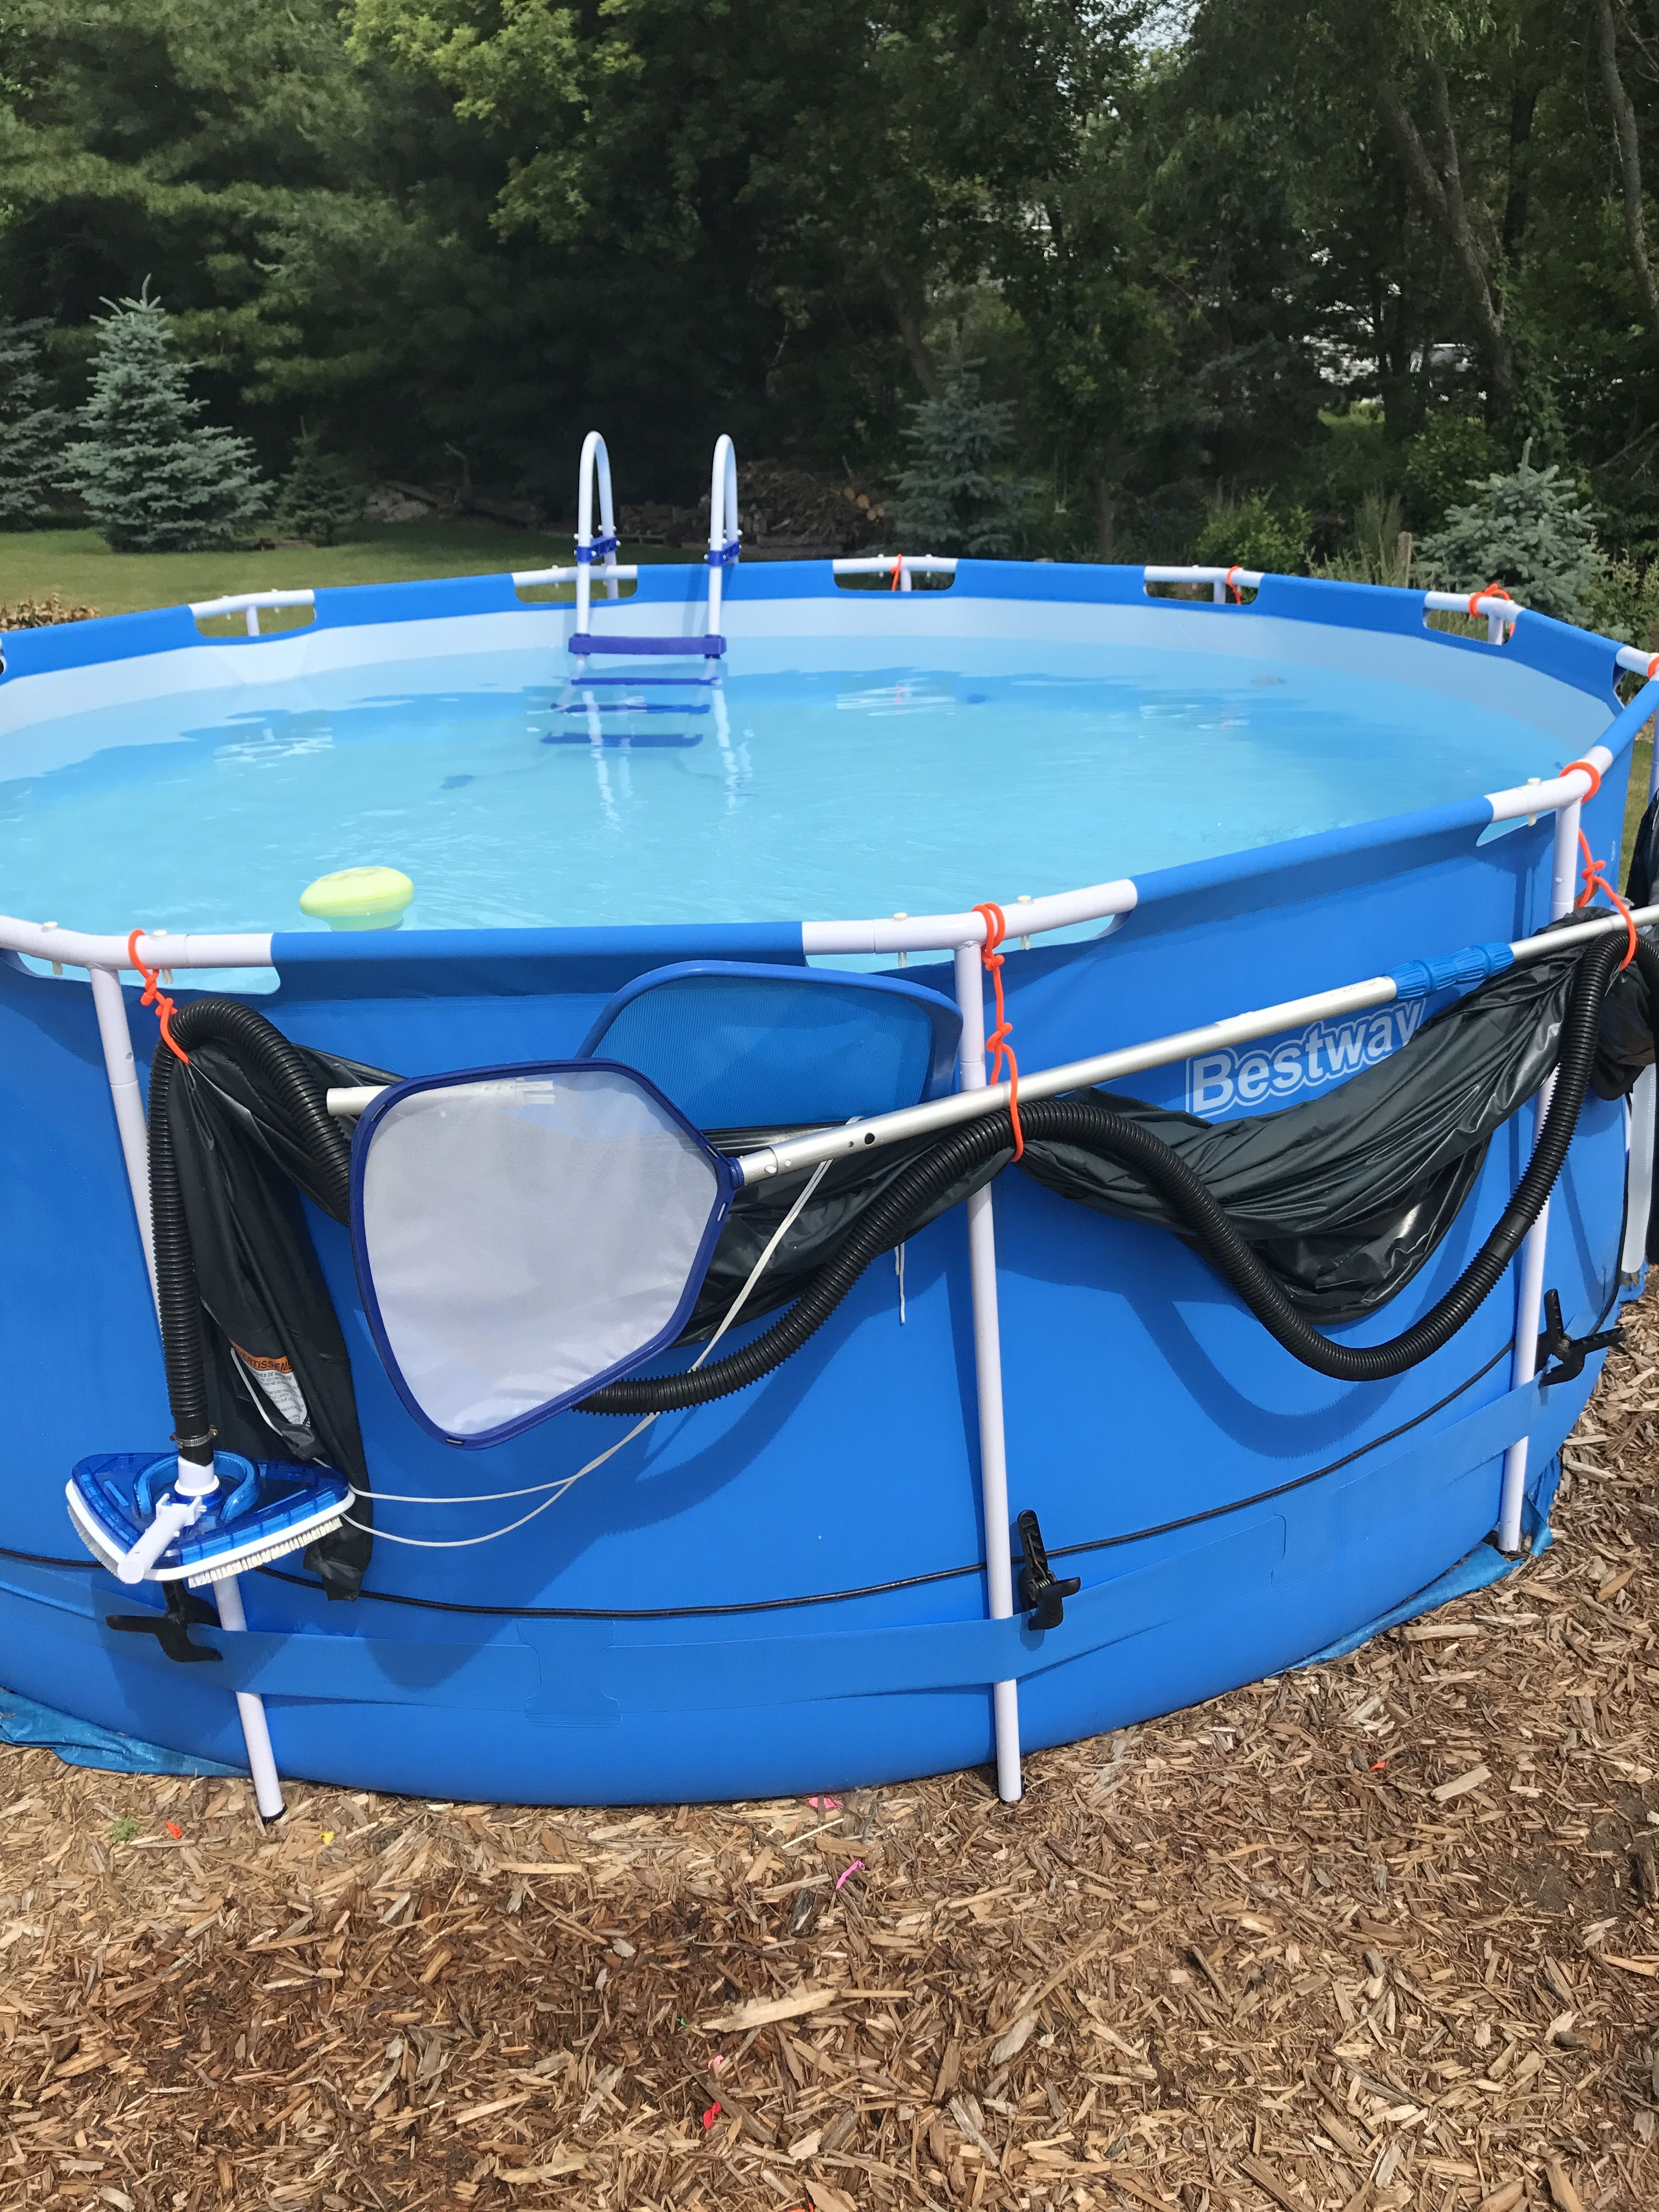 Pop Up Pool Easy Storage And Maintenance Using Elastic Tie Straps To Hold Pool Toys And Accessories For Easy Access And Won T Blo Simple Storage Pool Toys Pool